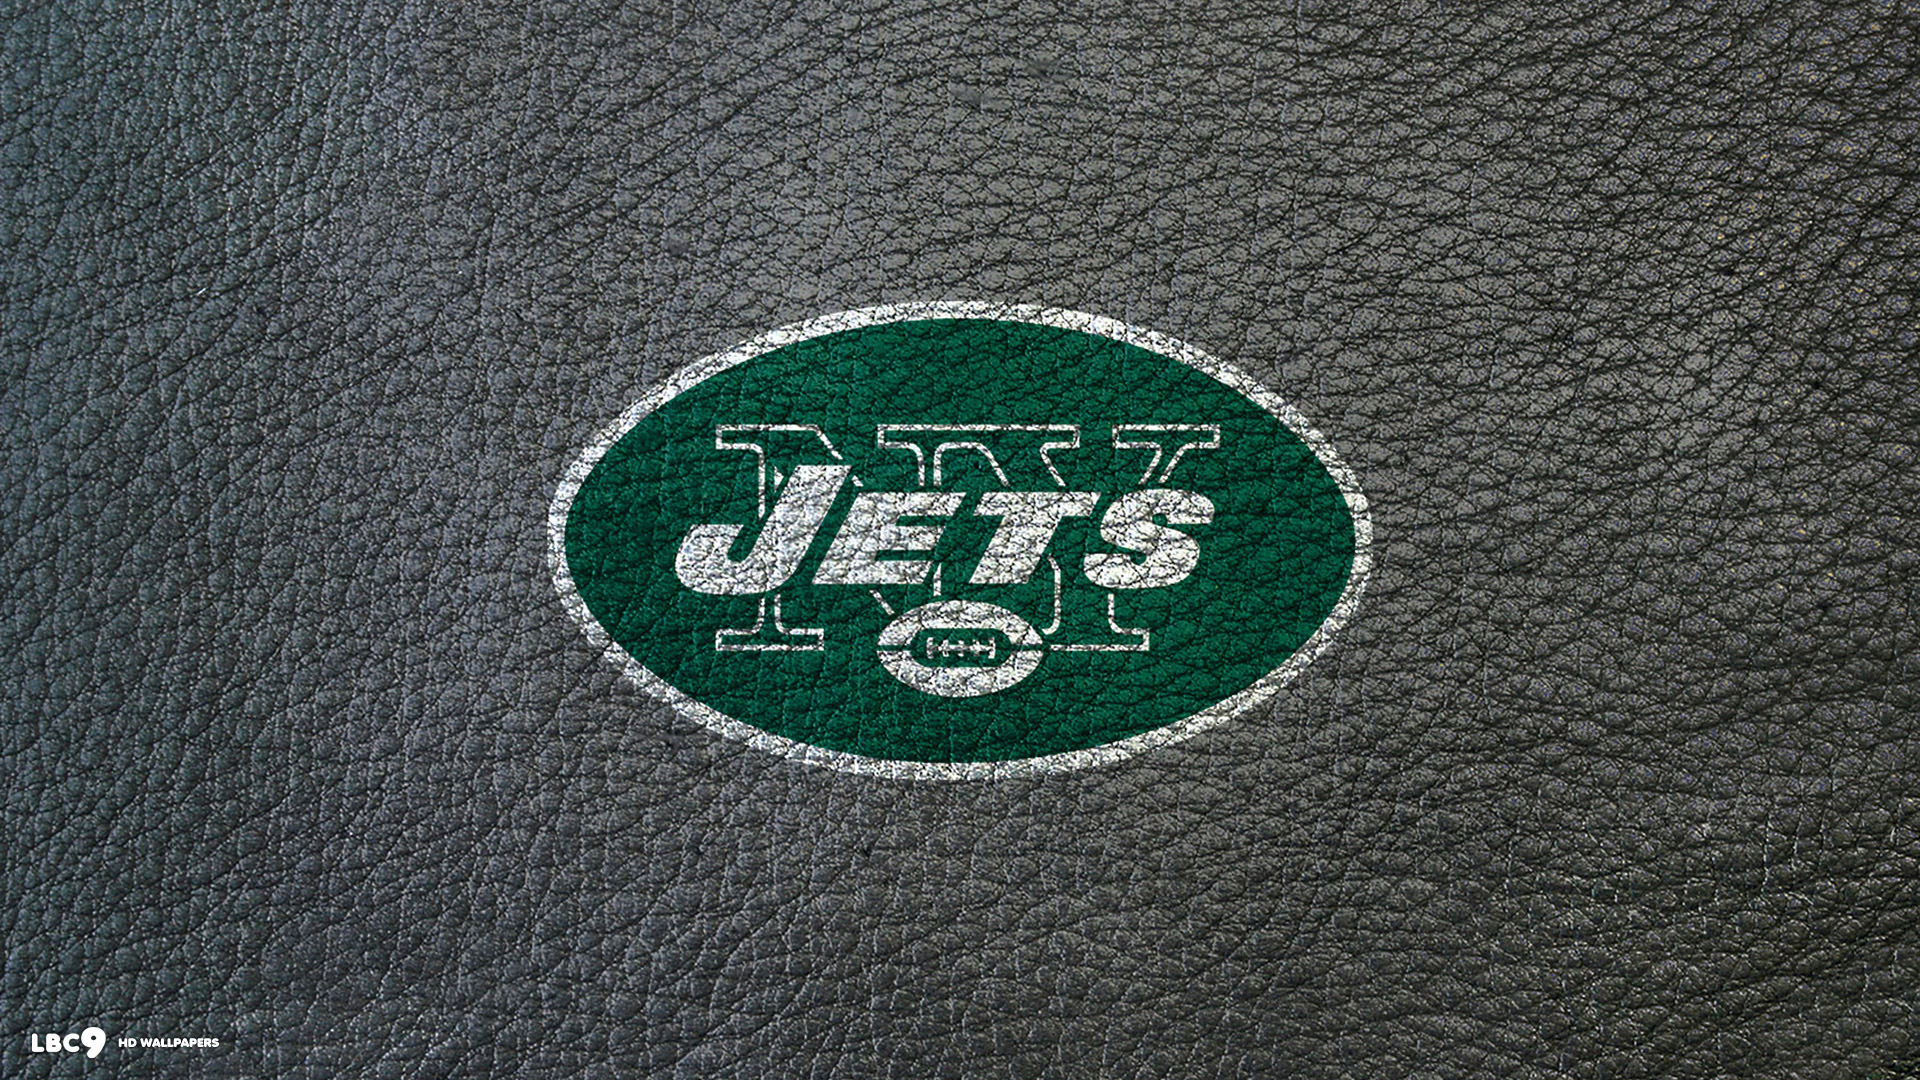 Up and Coming: New York Jets